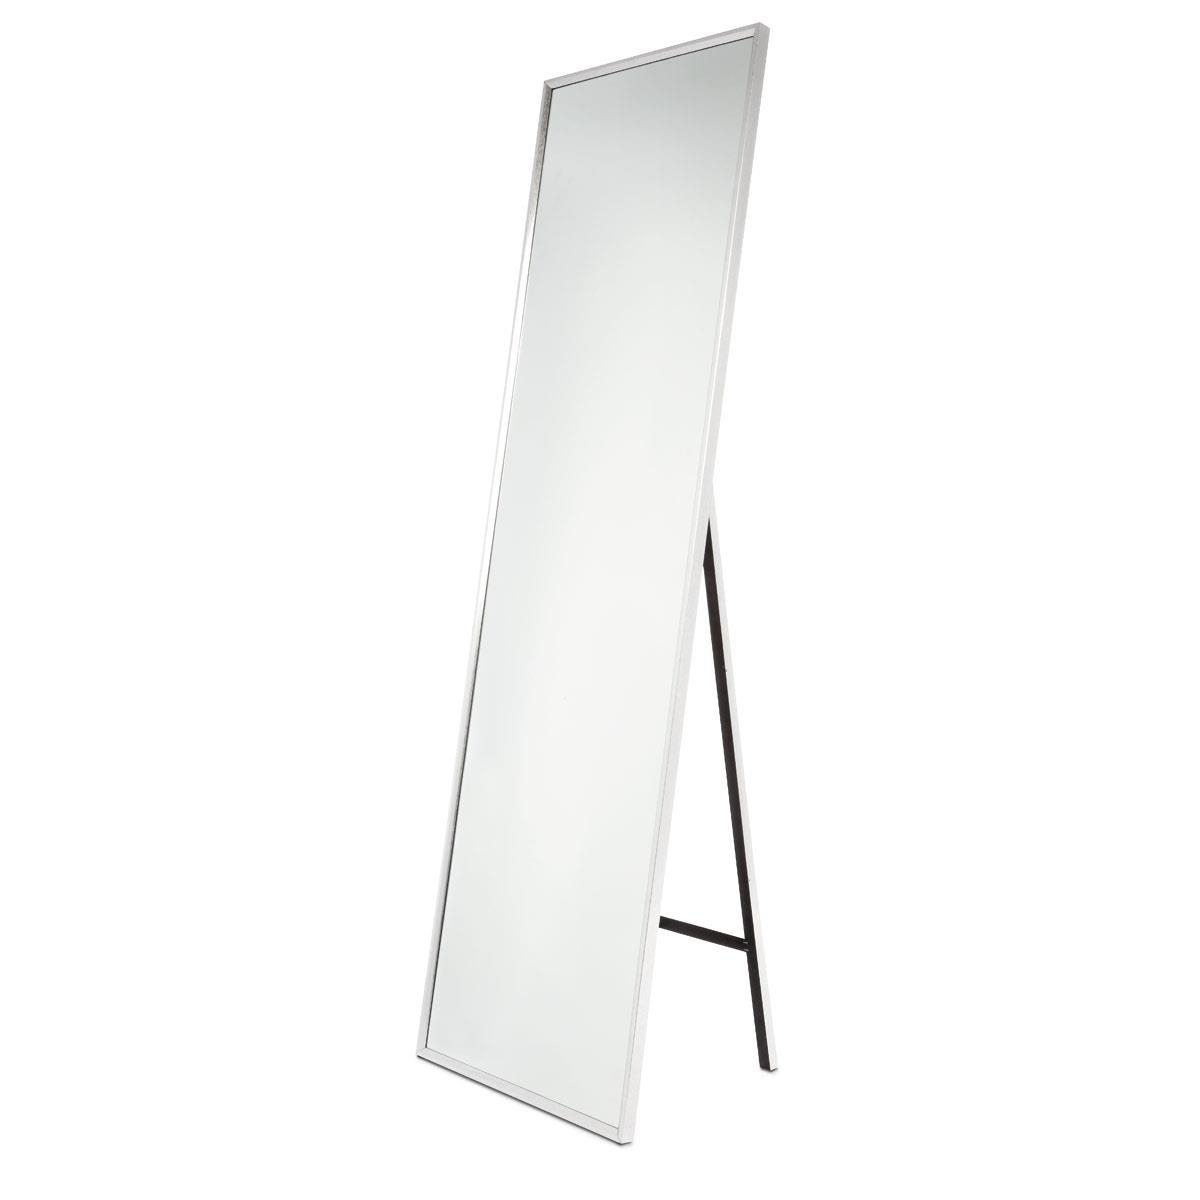 Styles: Kmart Mirrors | Free Standing Mirrors | White Full Length Throughout Modern Free Standing Mirror (Image 19 of 20)